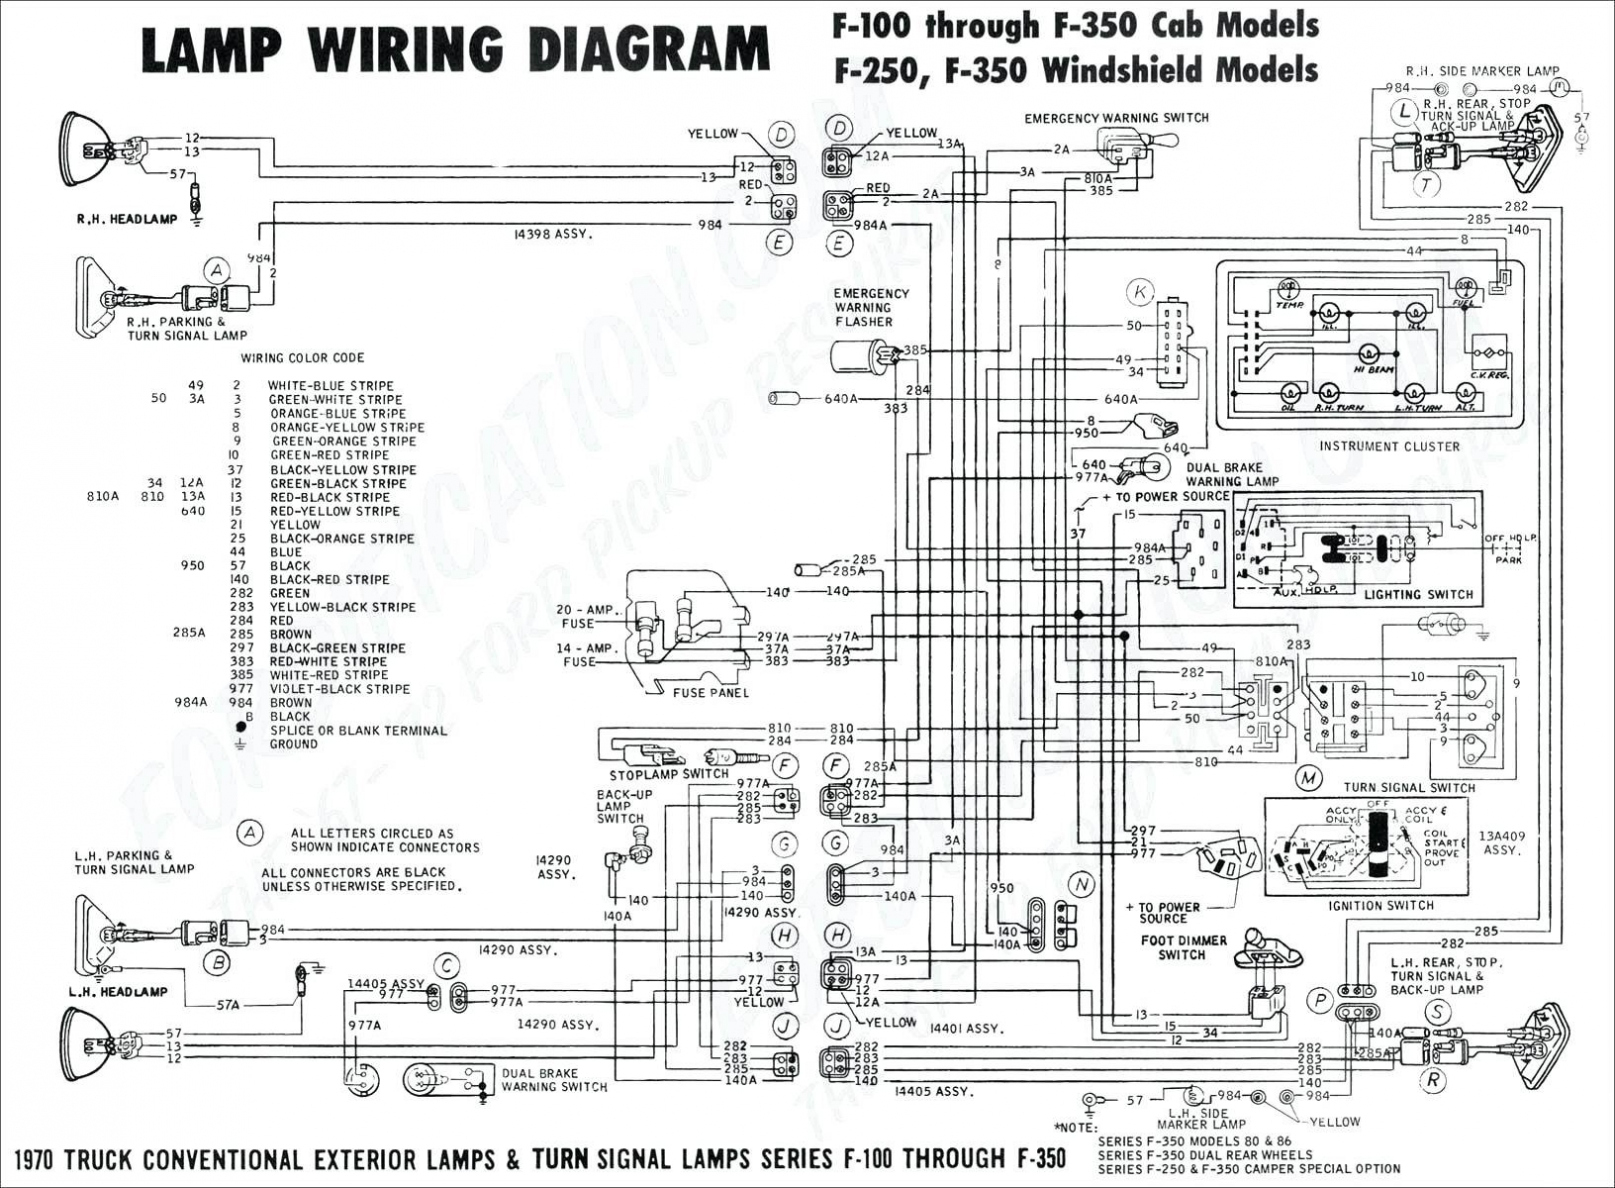 7600a beckett wiring diagram everything wiring diagram Electrical Motor Schematic Diagram